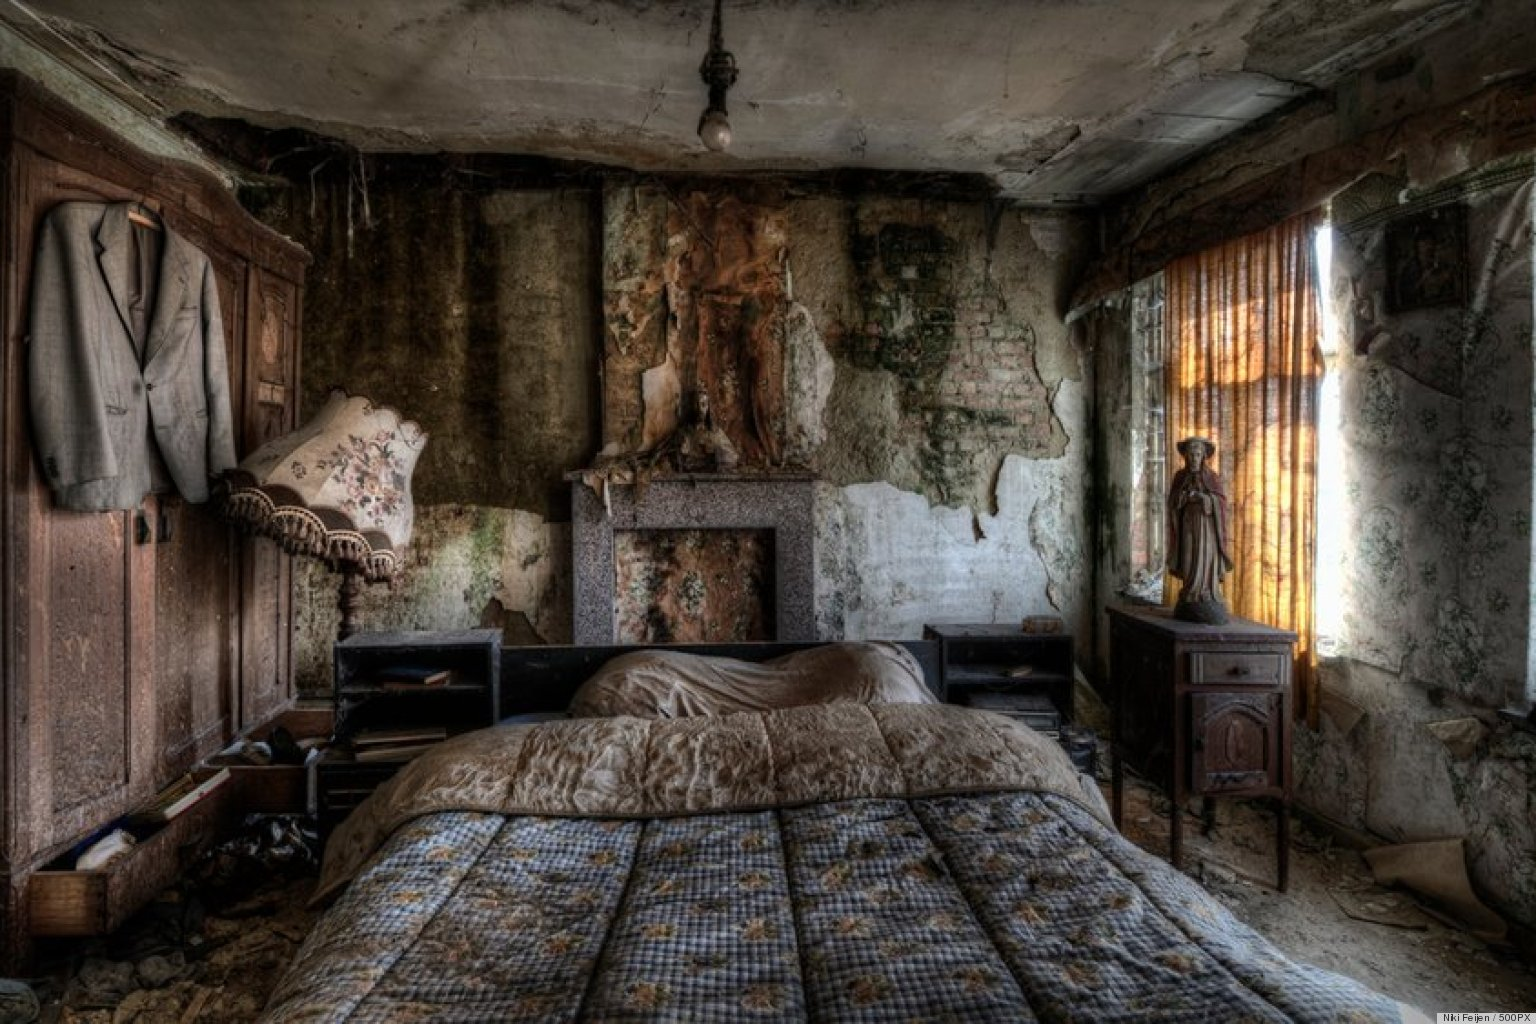 stunning pics of an abandoned farmhouse where the bed is still made photos huffpost. Black Bedroom Furniture Sets. Home Design Ideas